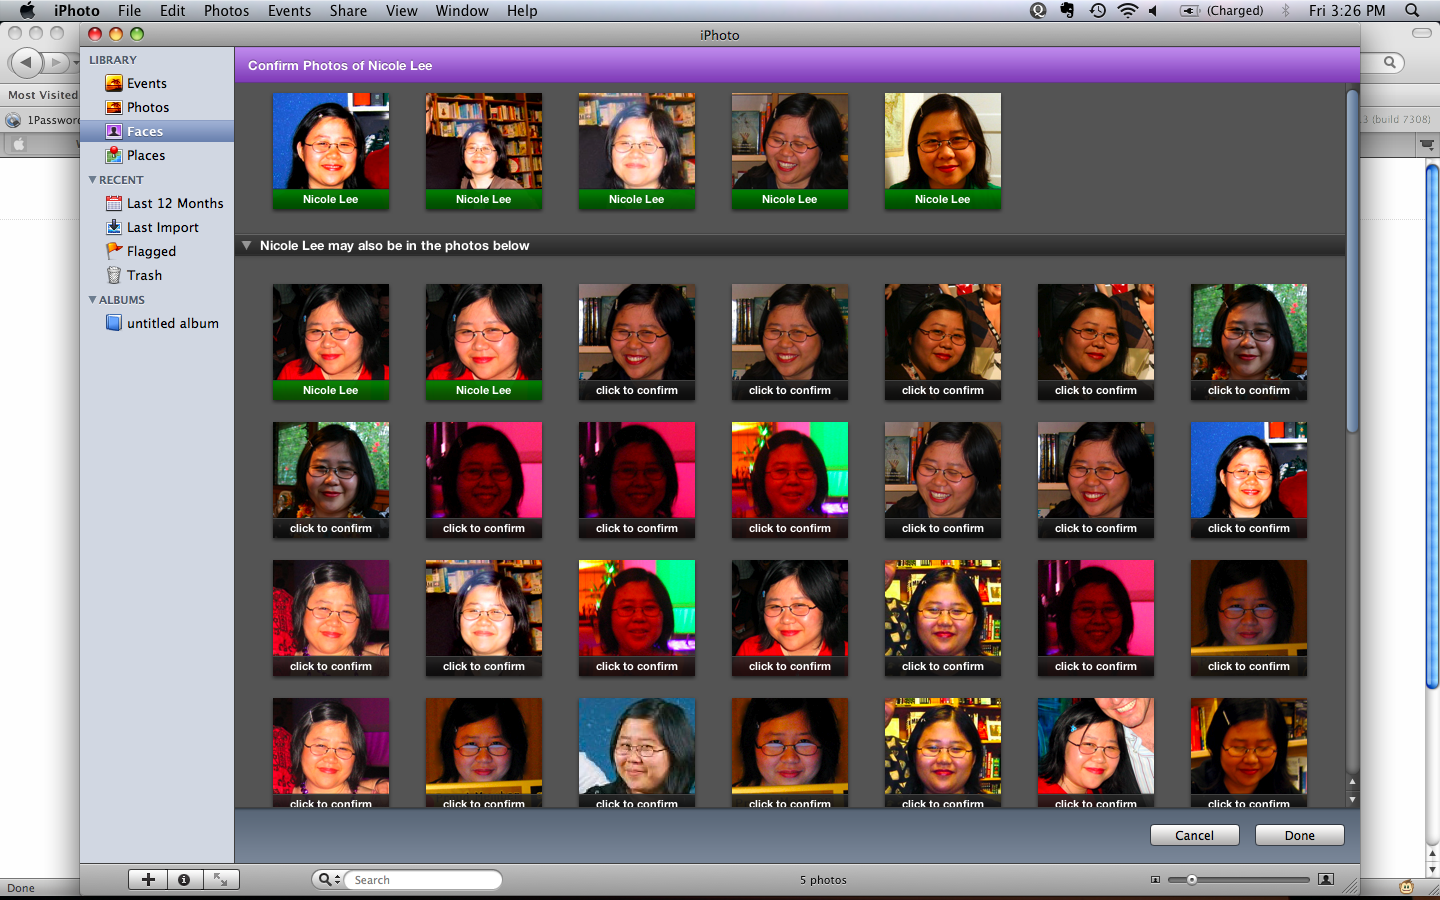 Once you're done adding the name to the face, you can then run the face detection engine. After that, you should go through the list of results to confirm or not confirm them.